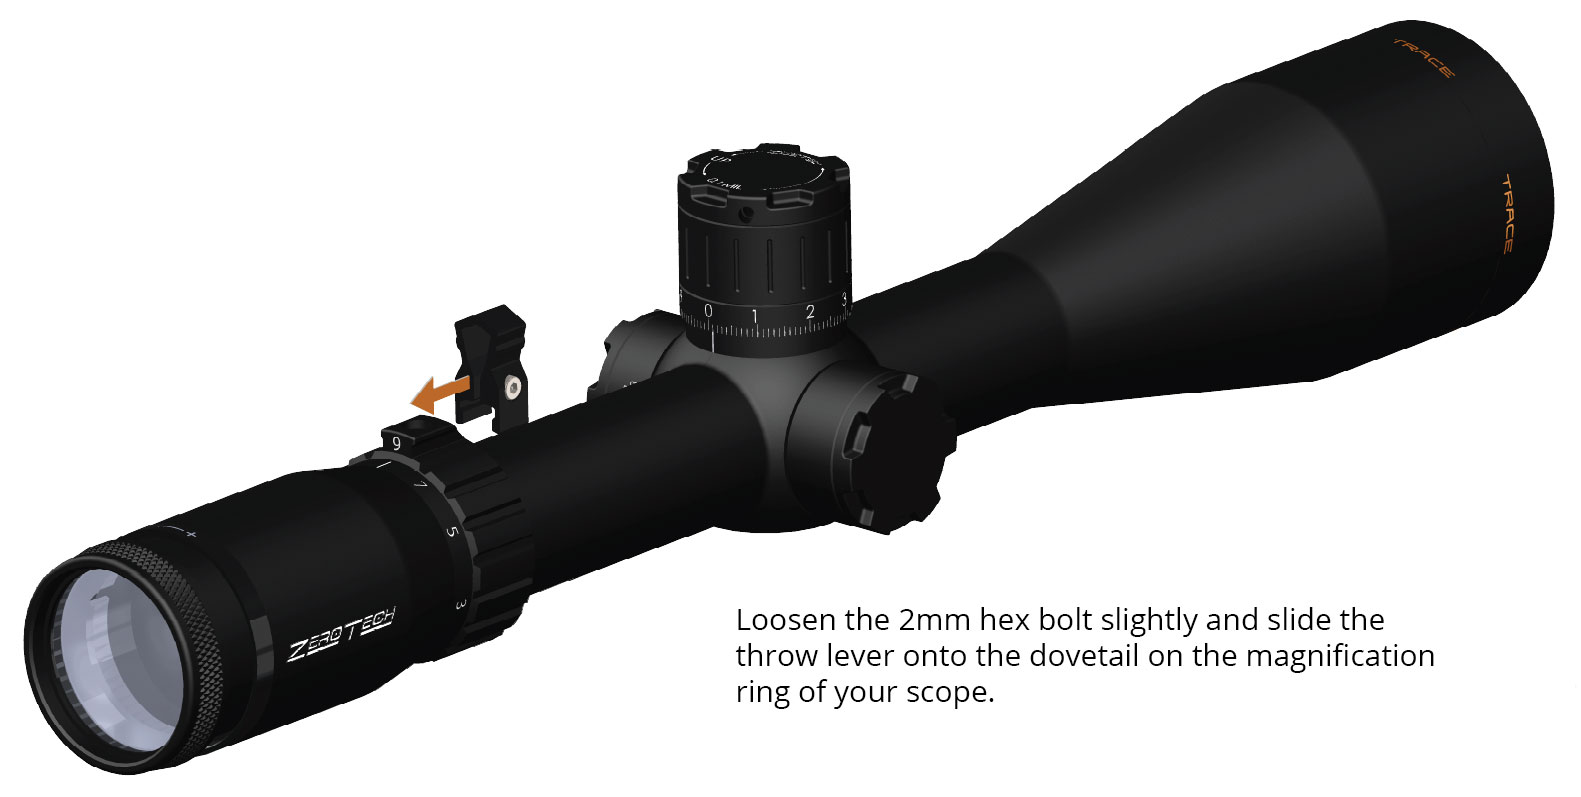 ZT-Throw-Lever-Instructions-1